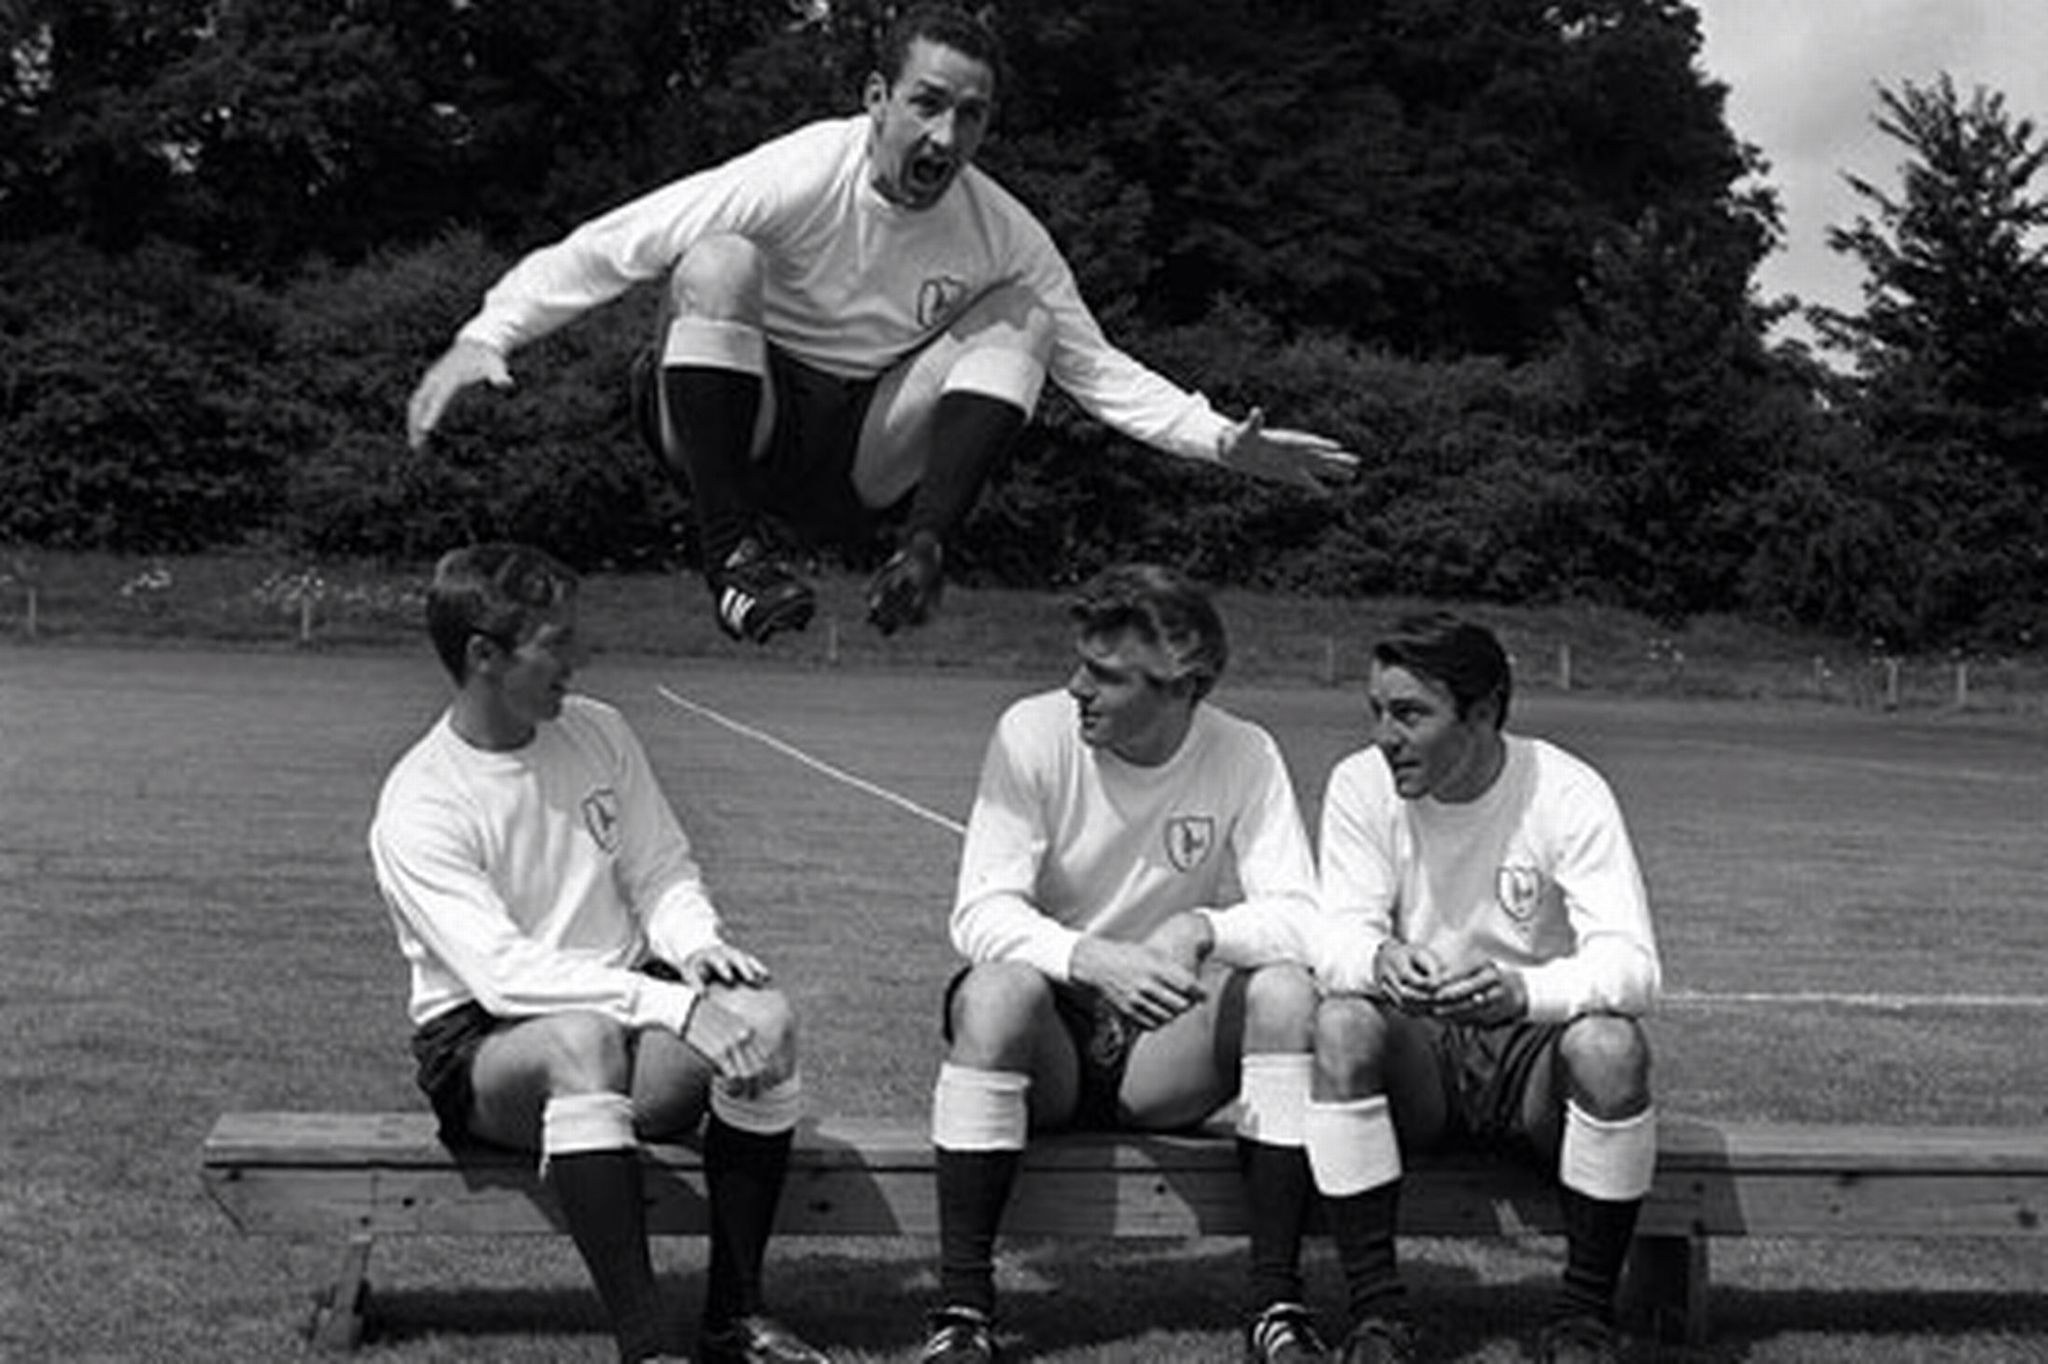 Dave Mackay clowning around, with Cliff Jones, Ron Henry and Jimmy Greaves